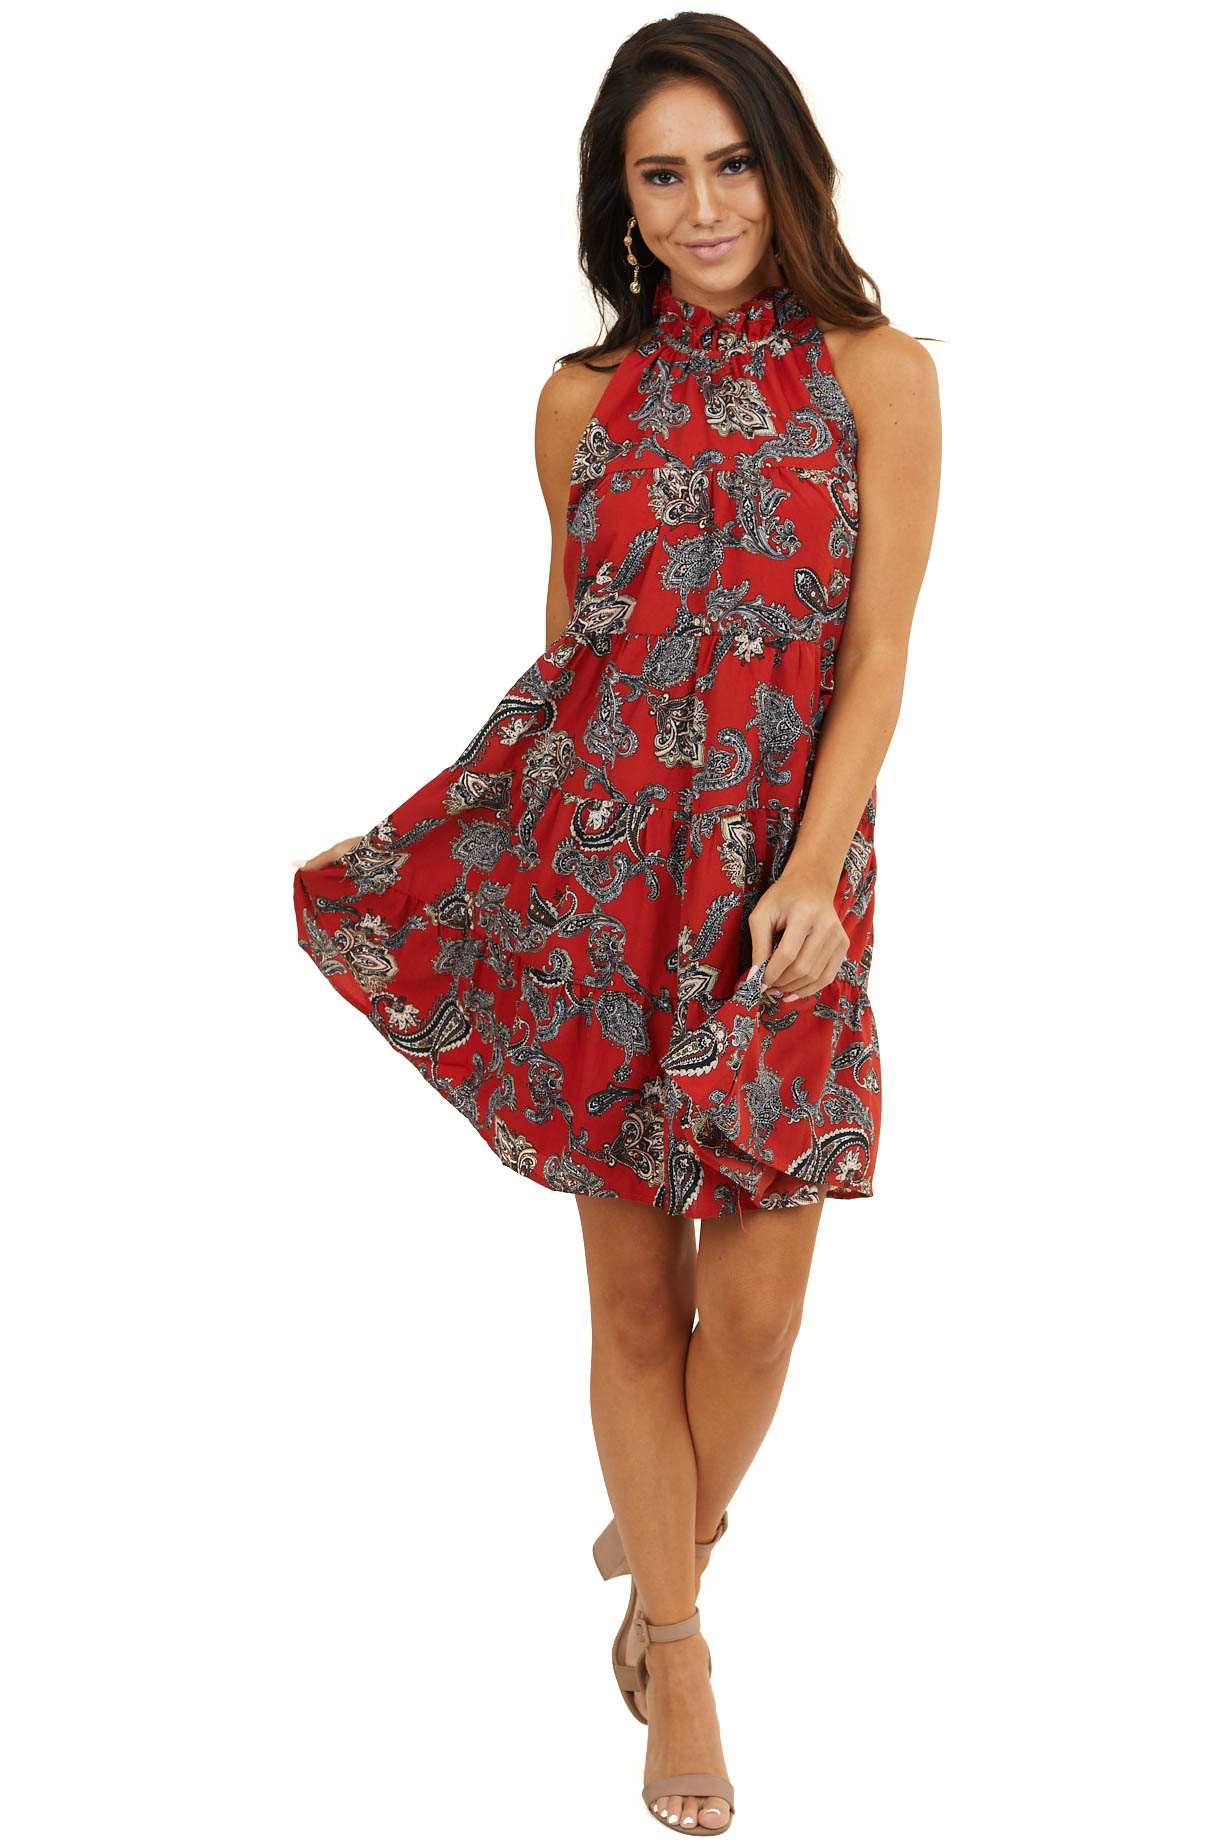 Cranberry Red Paisley Print Halter Top Tiered Short Dress